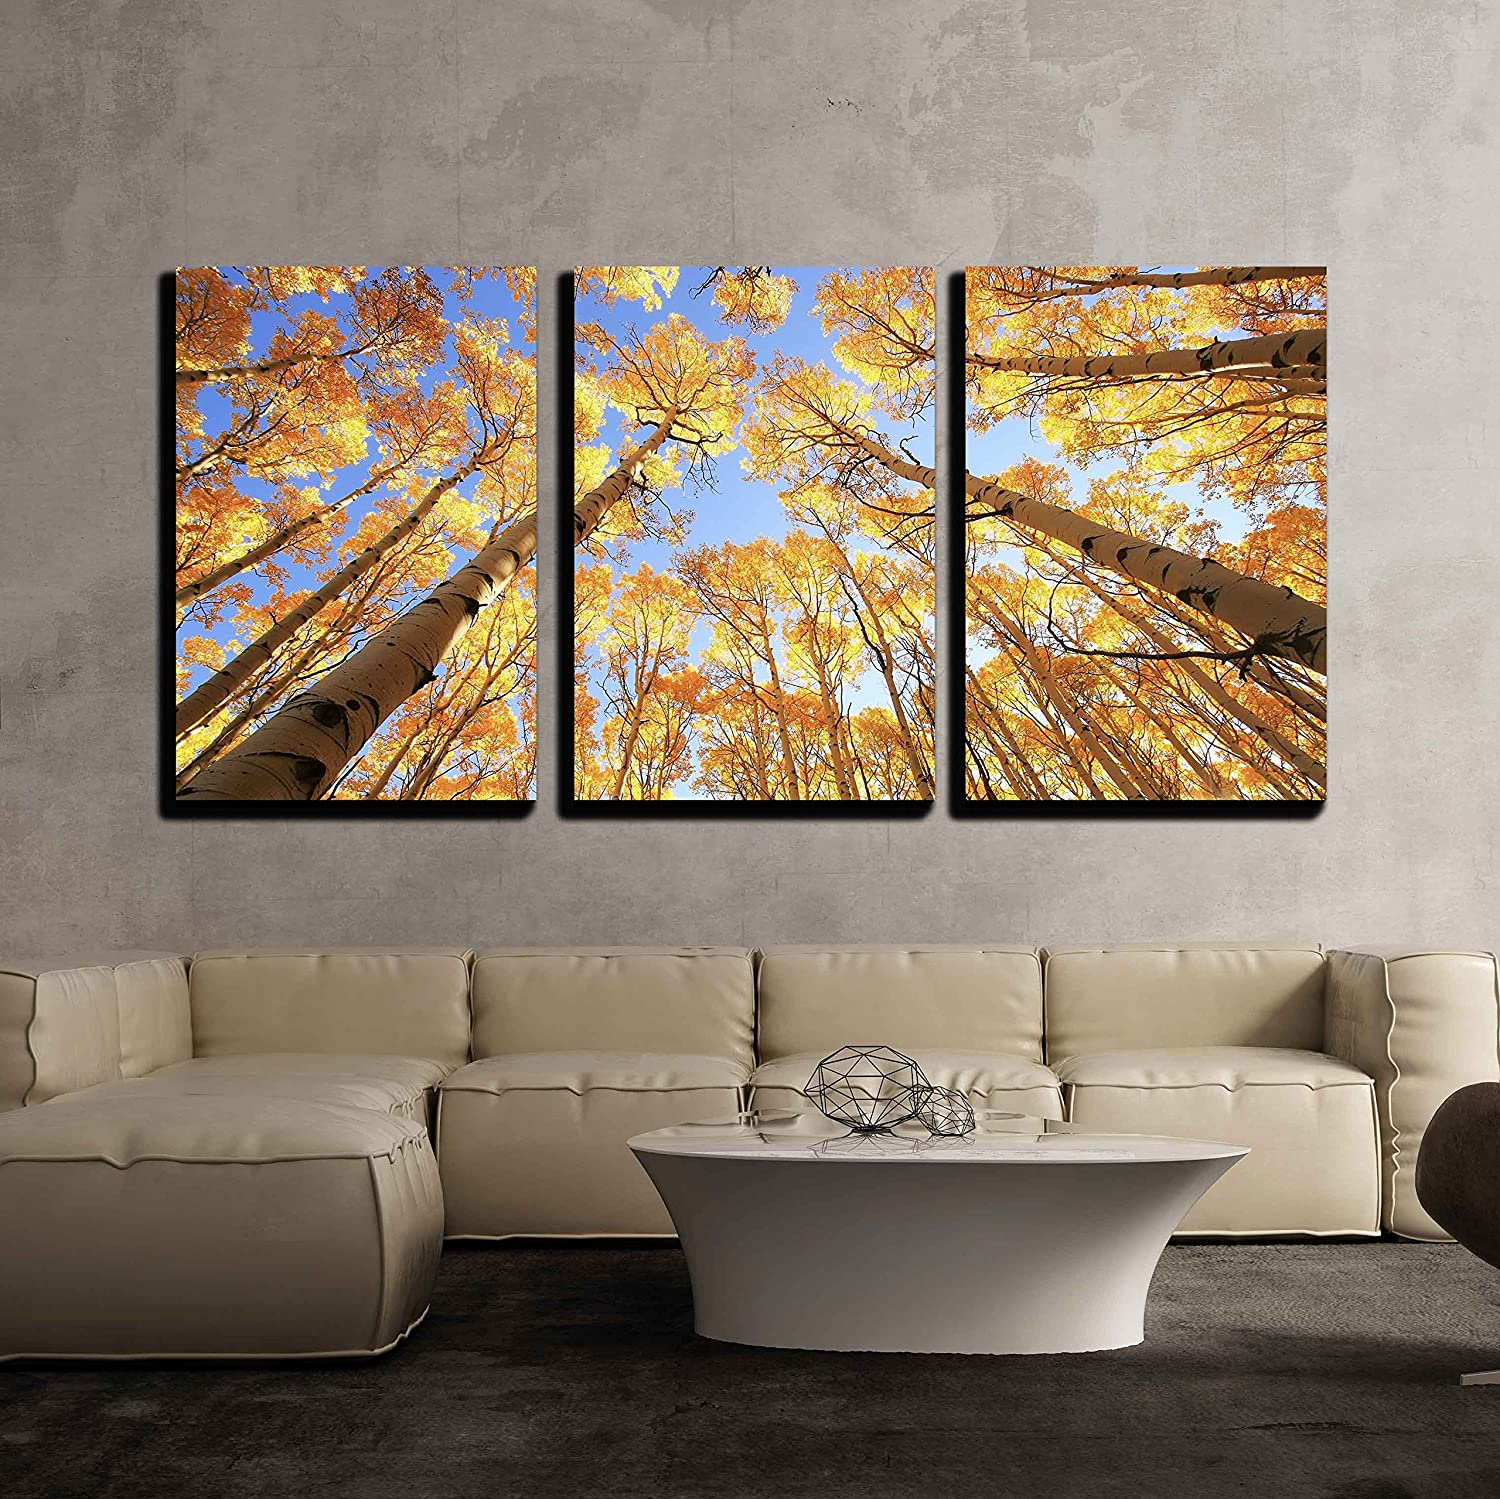 wall26 com art prints framed art canvas prints greeting wall26 3 piece canvas wall art aspen trees with fall color san juan national forest colorado usa modern home decor stretched and framed ready to